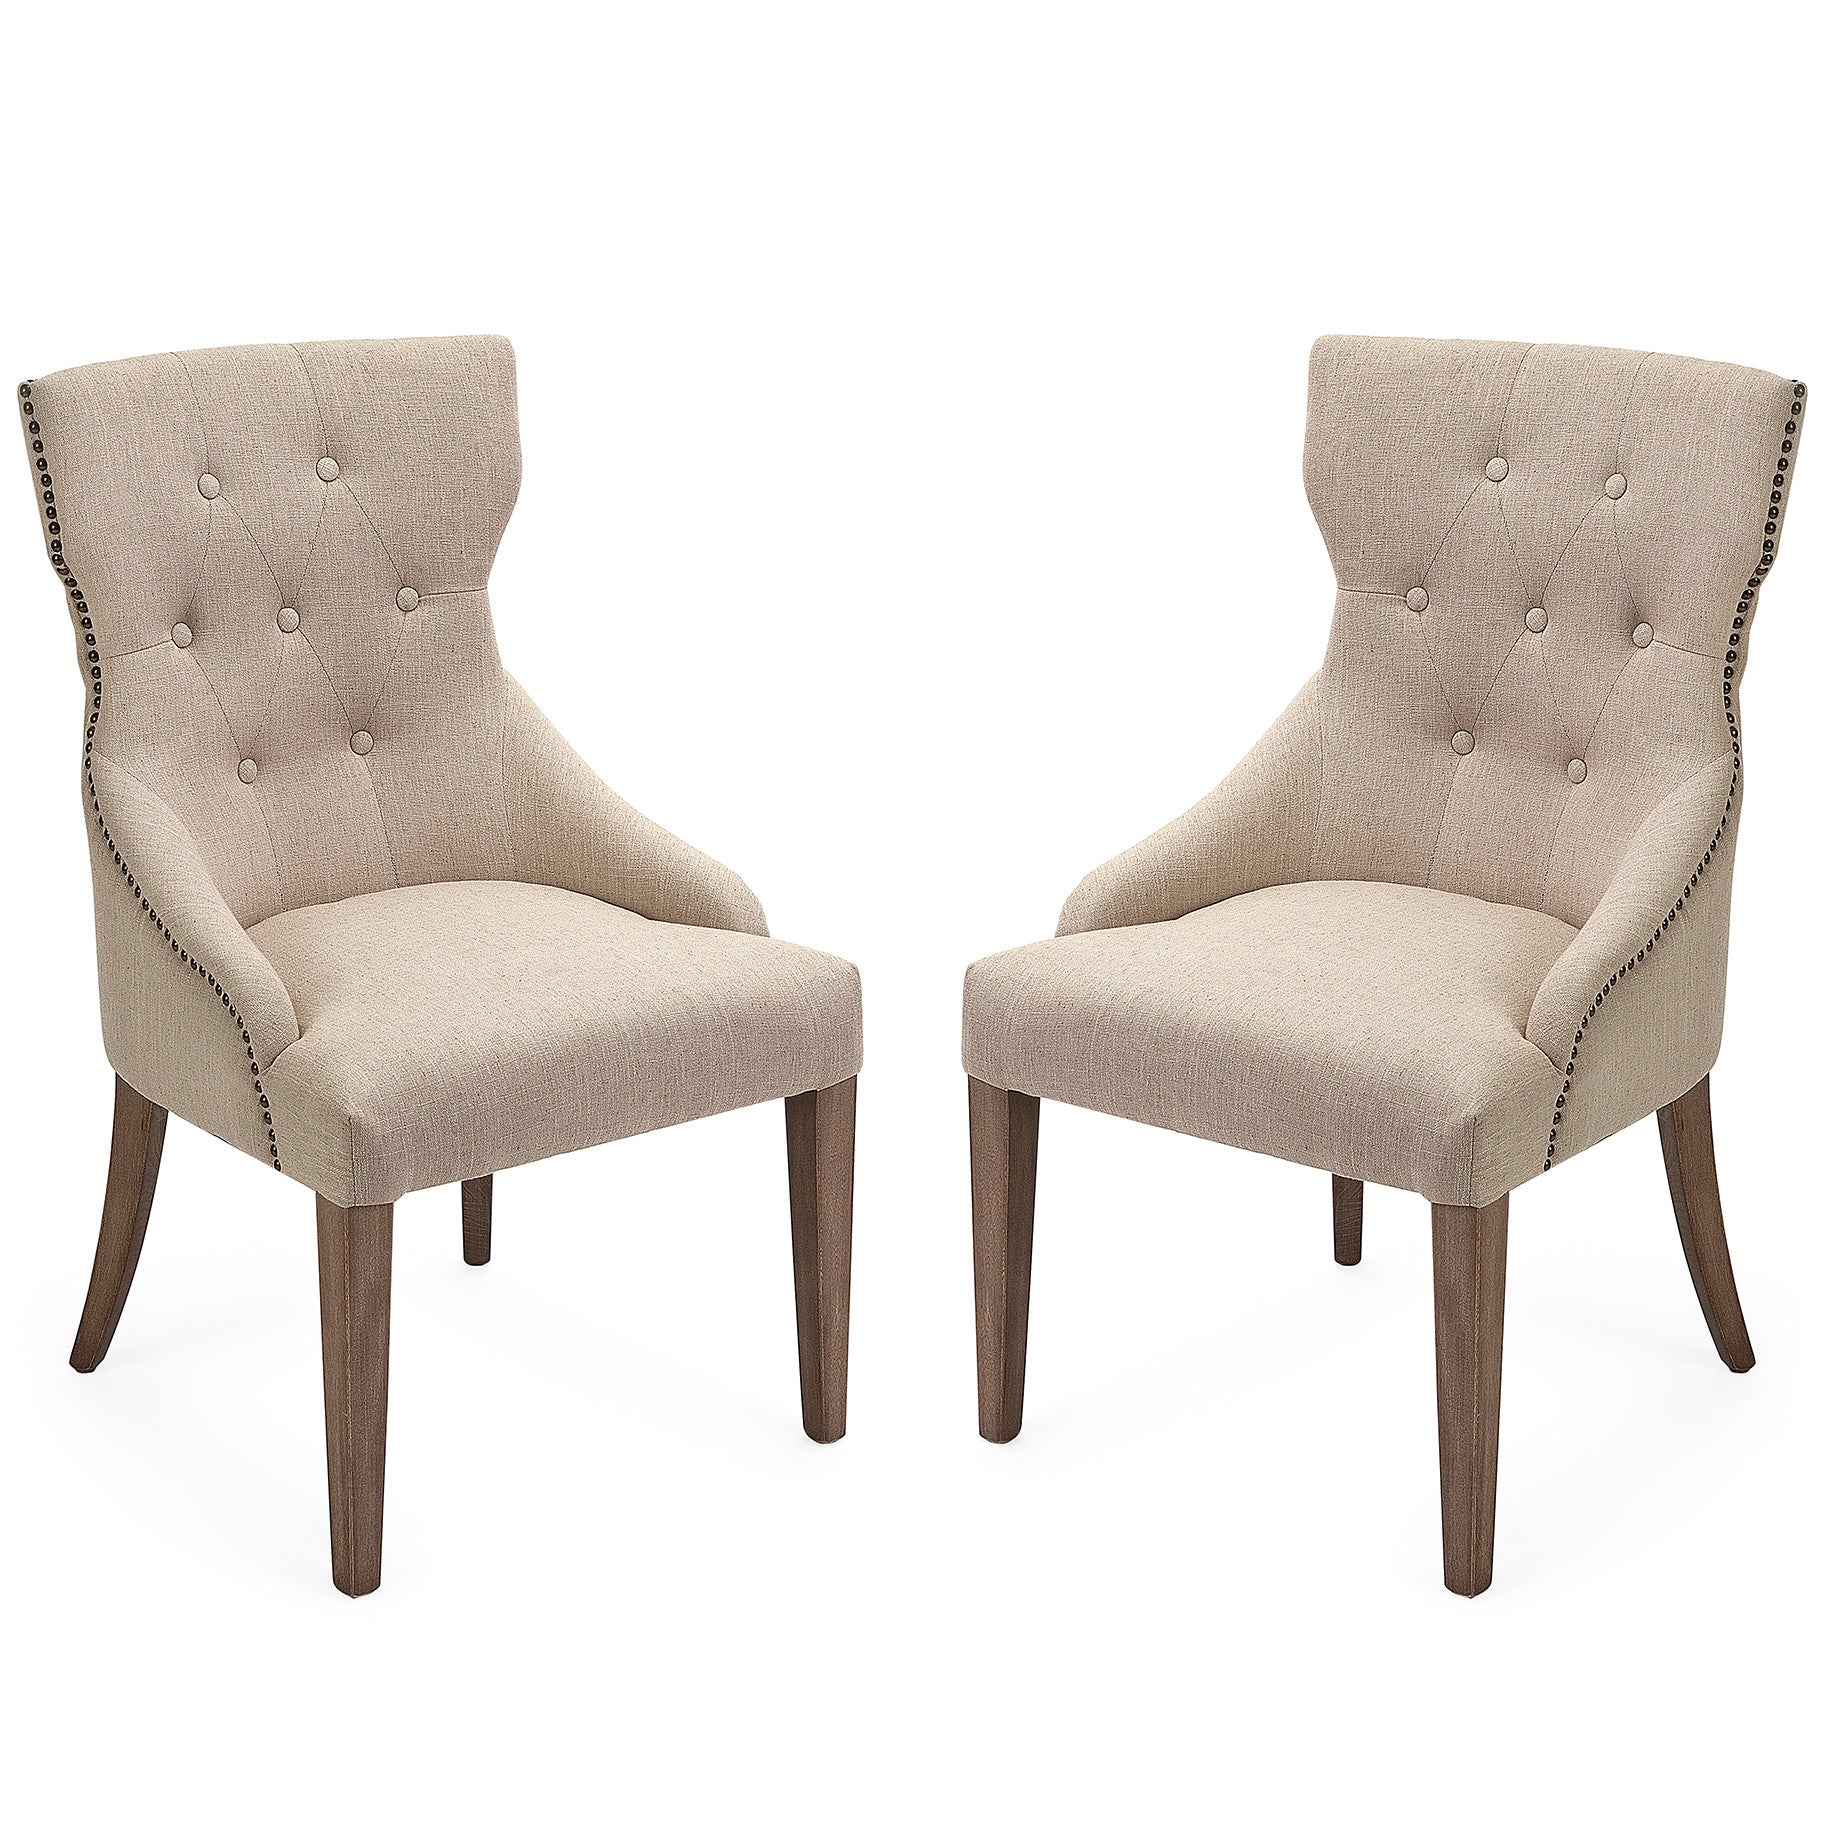 Beige Tufted Nailhead Trim Dining Chairs - Set of 2